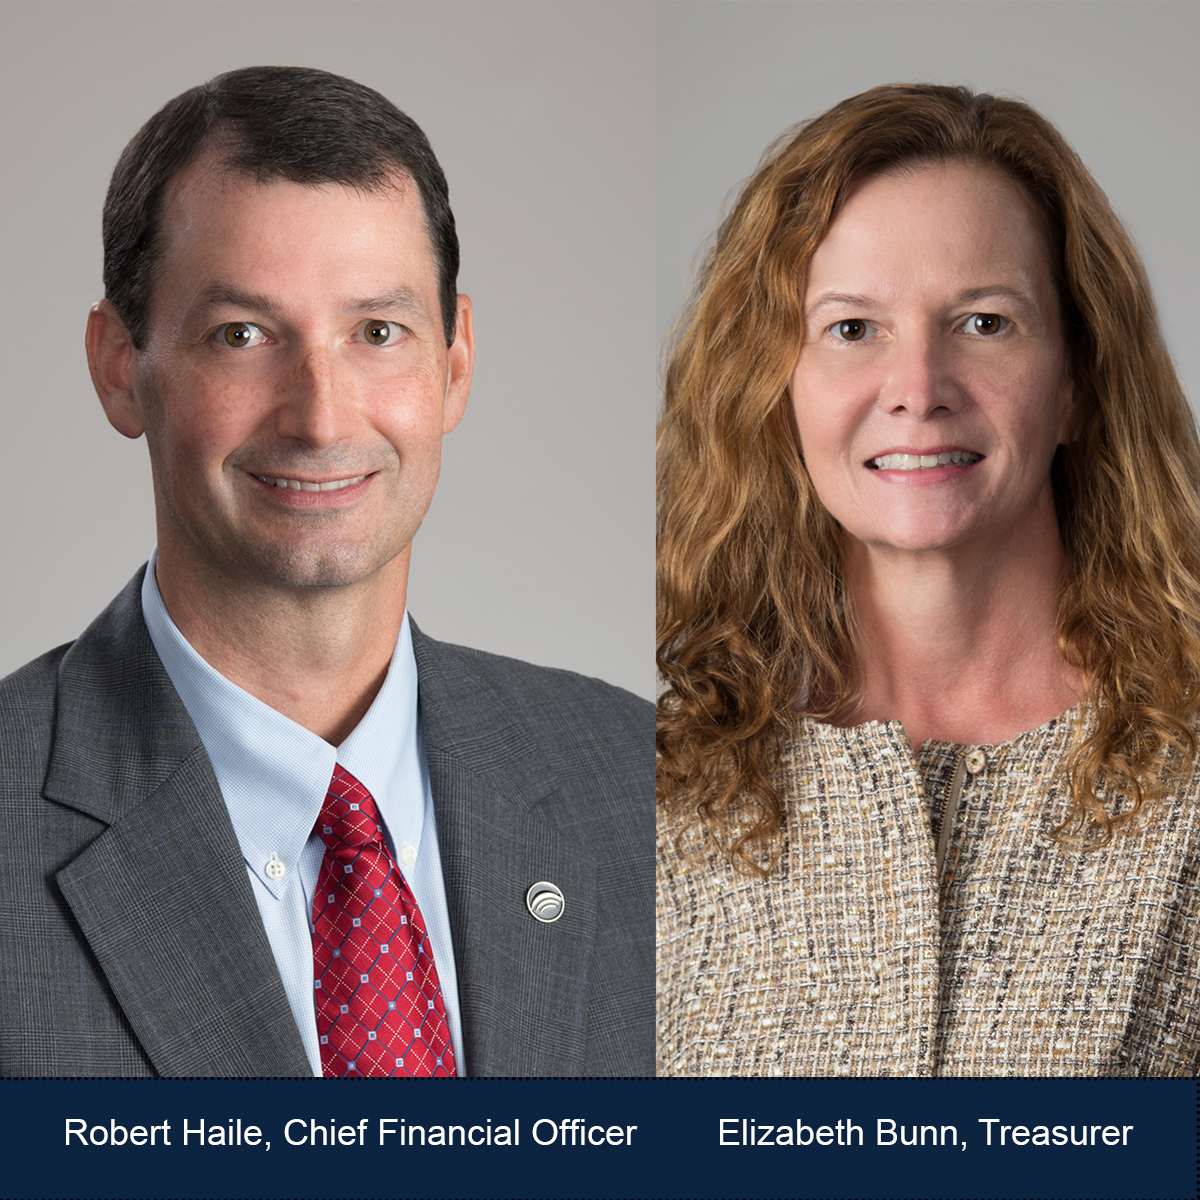 FIRST RELIANCE BANK EXPANDS FINANCIAL LEADERSHIP TEAM